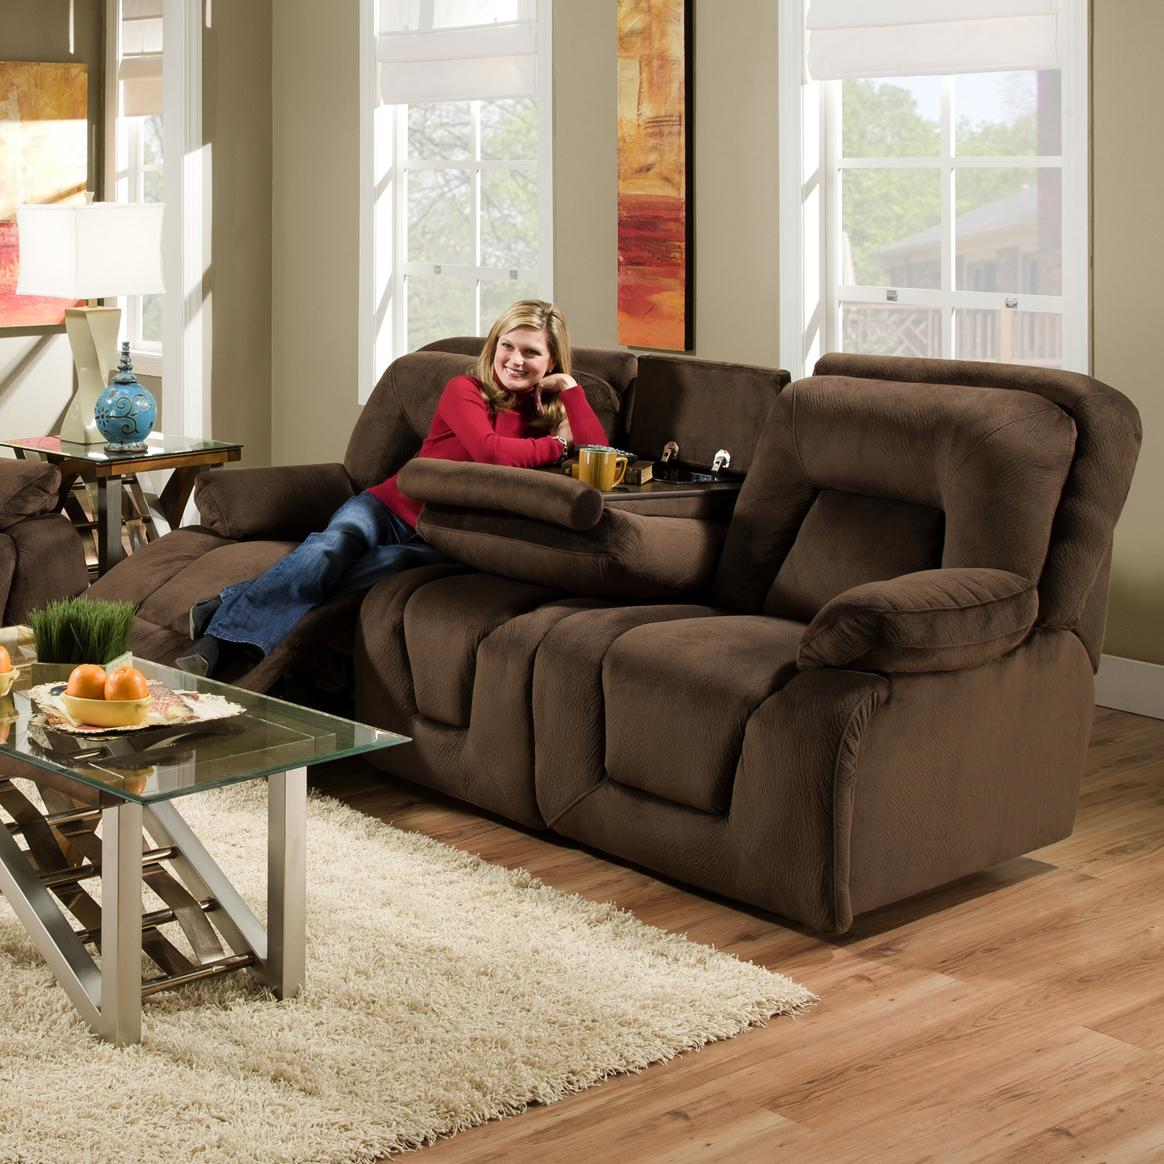 Franklin 473 Power Double Reclining Sofa with Drop-Down Table for Casual Family Room Style - AHFA - Reclining Sofa Dealer Locator & Franklin 473 Power Double Reclining Sofa with Drop-Down Table for ... islam-shia.org